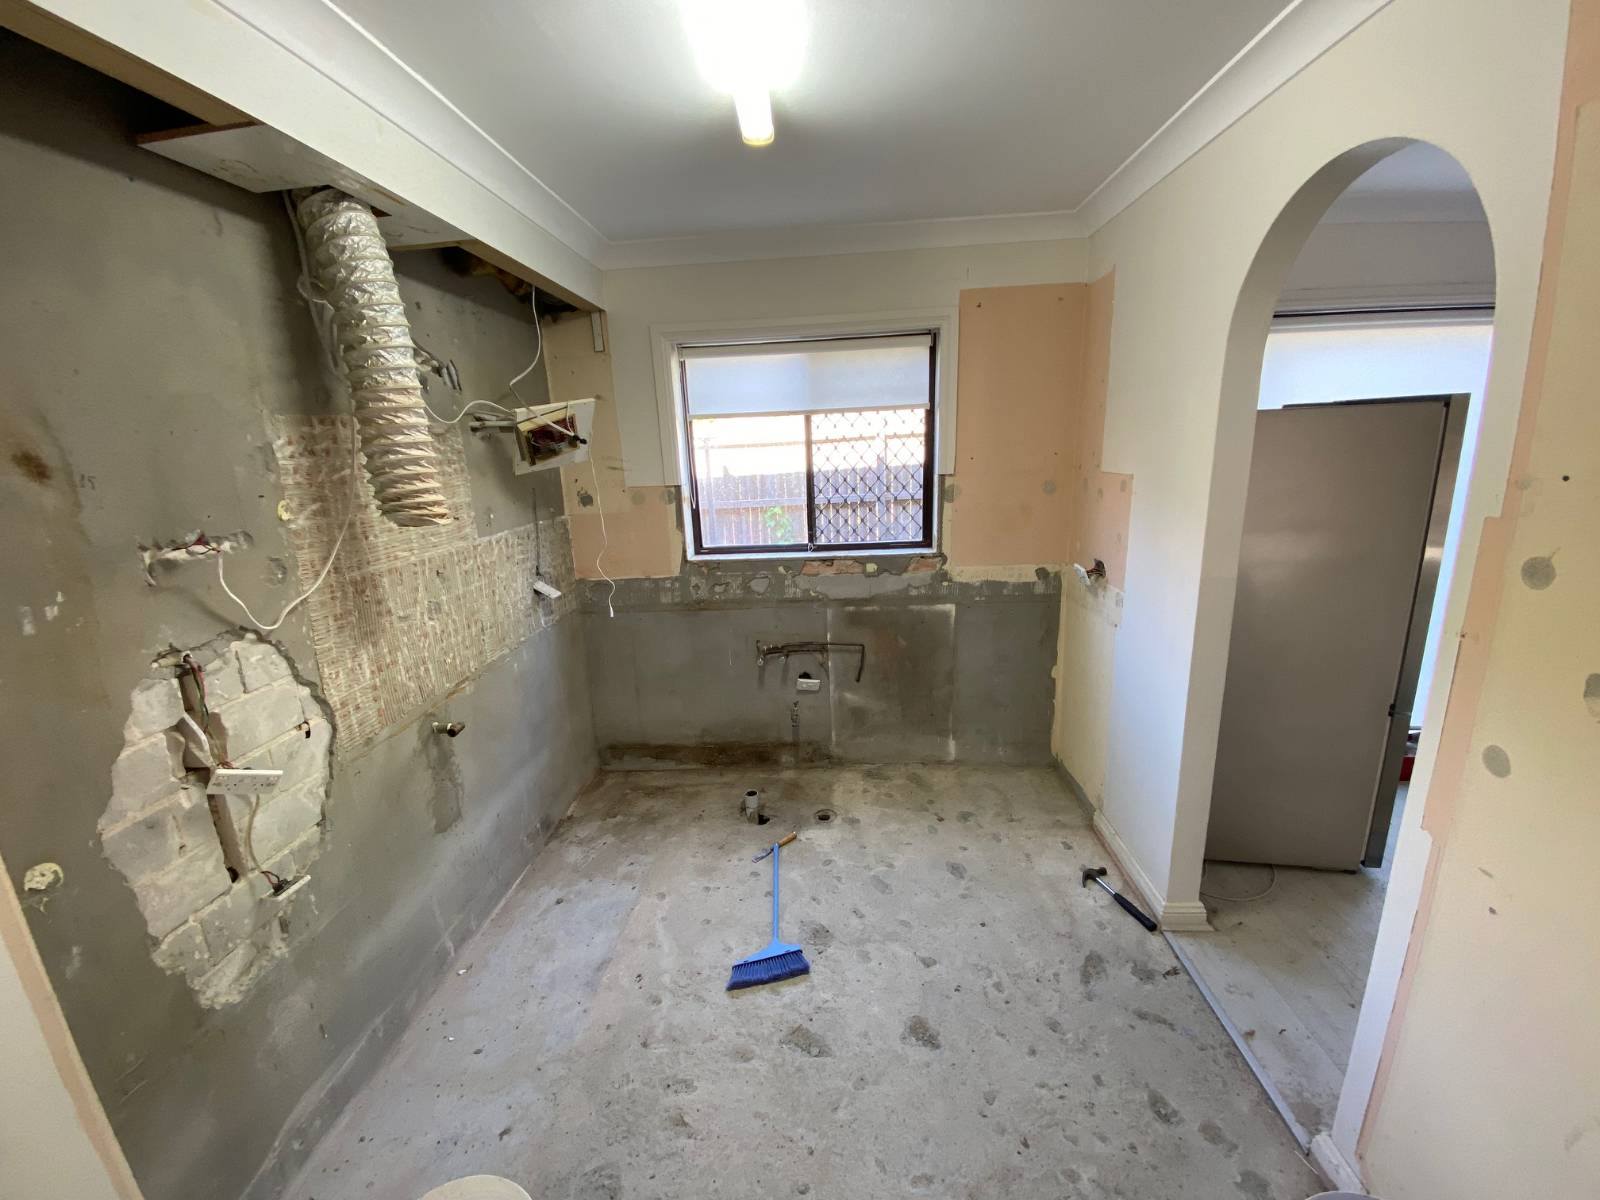 Self Levelling one section of the house?